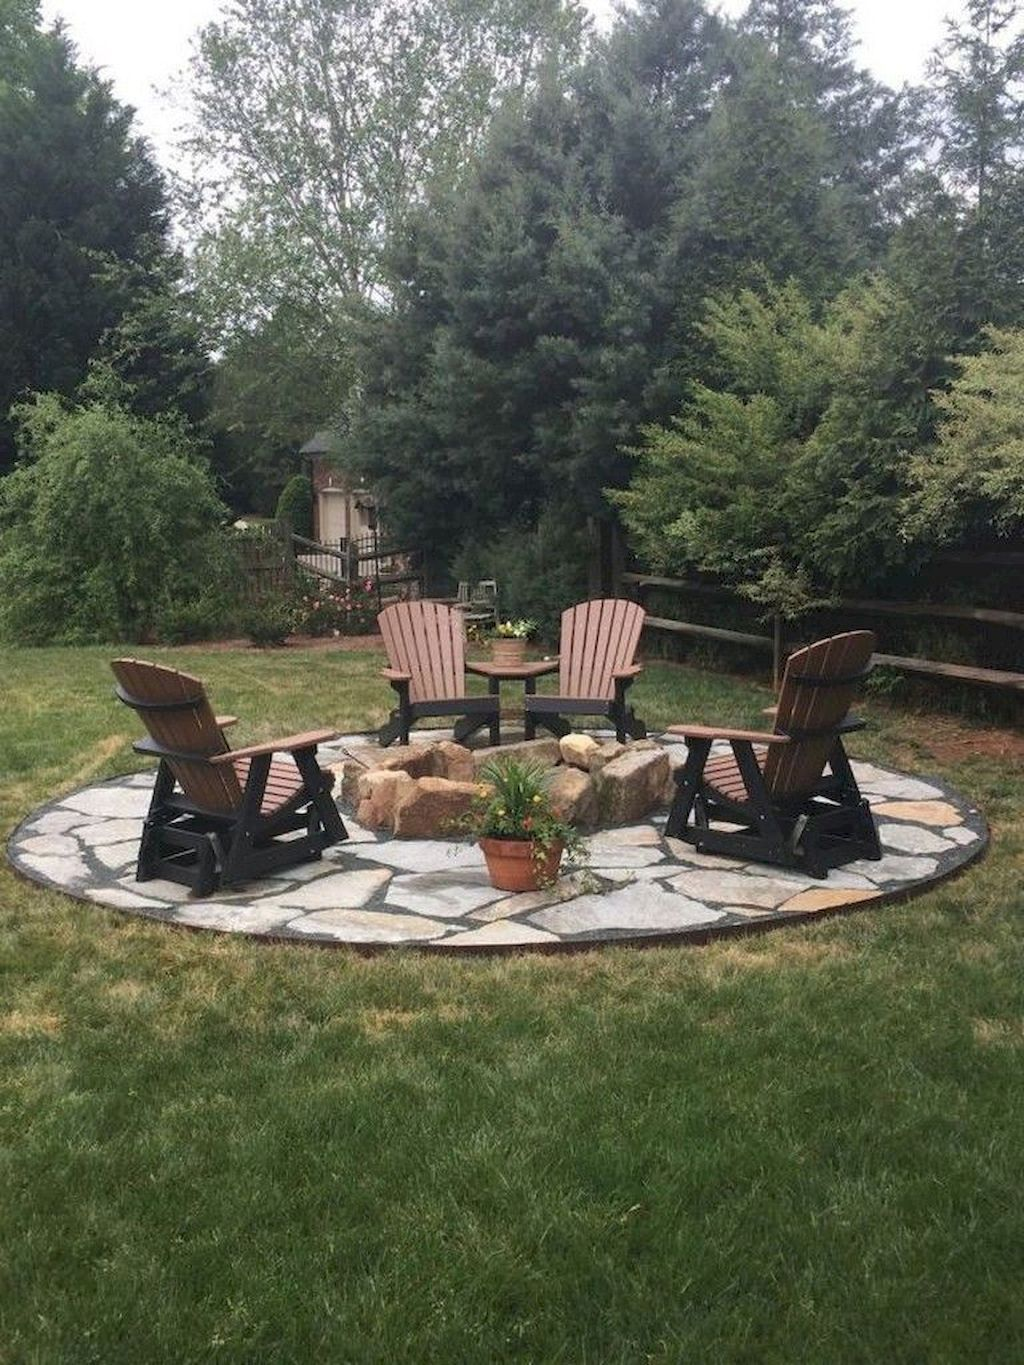 55 Easy Diy Backyard Seating Area Ideas On A Budget Outdoor Fire